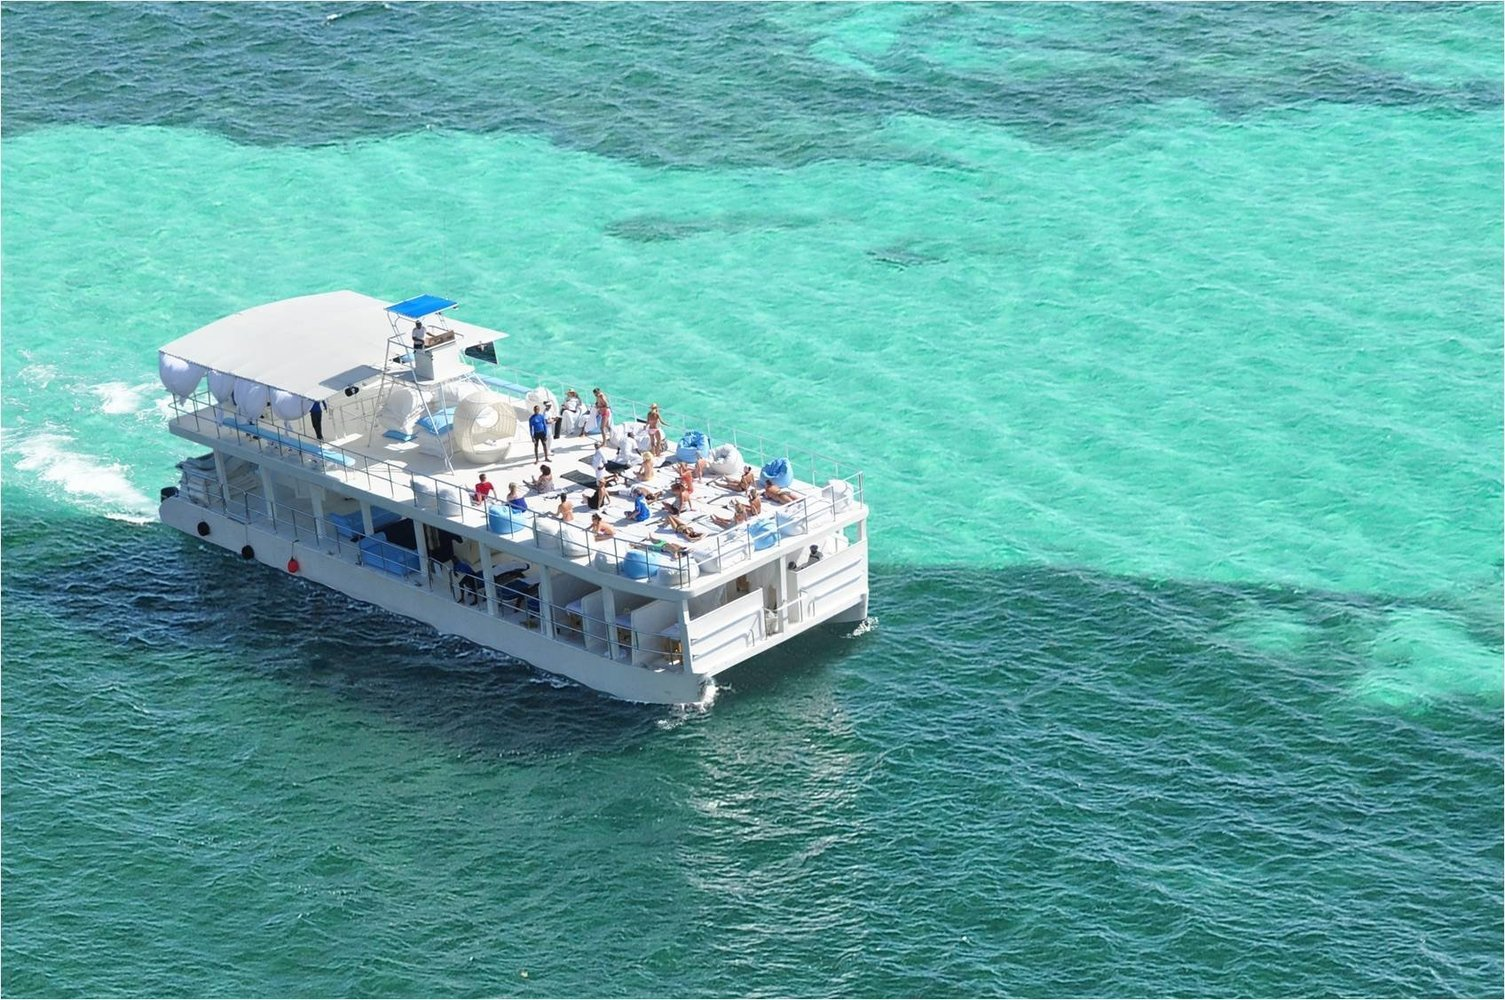 UP TO 15% OFF ON TRANSFERS AND EXCURSIONS